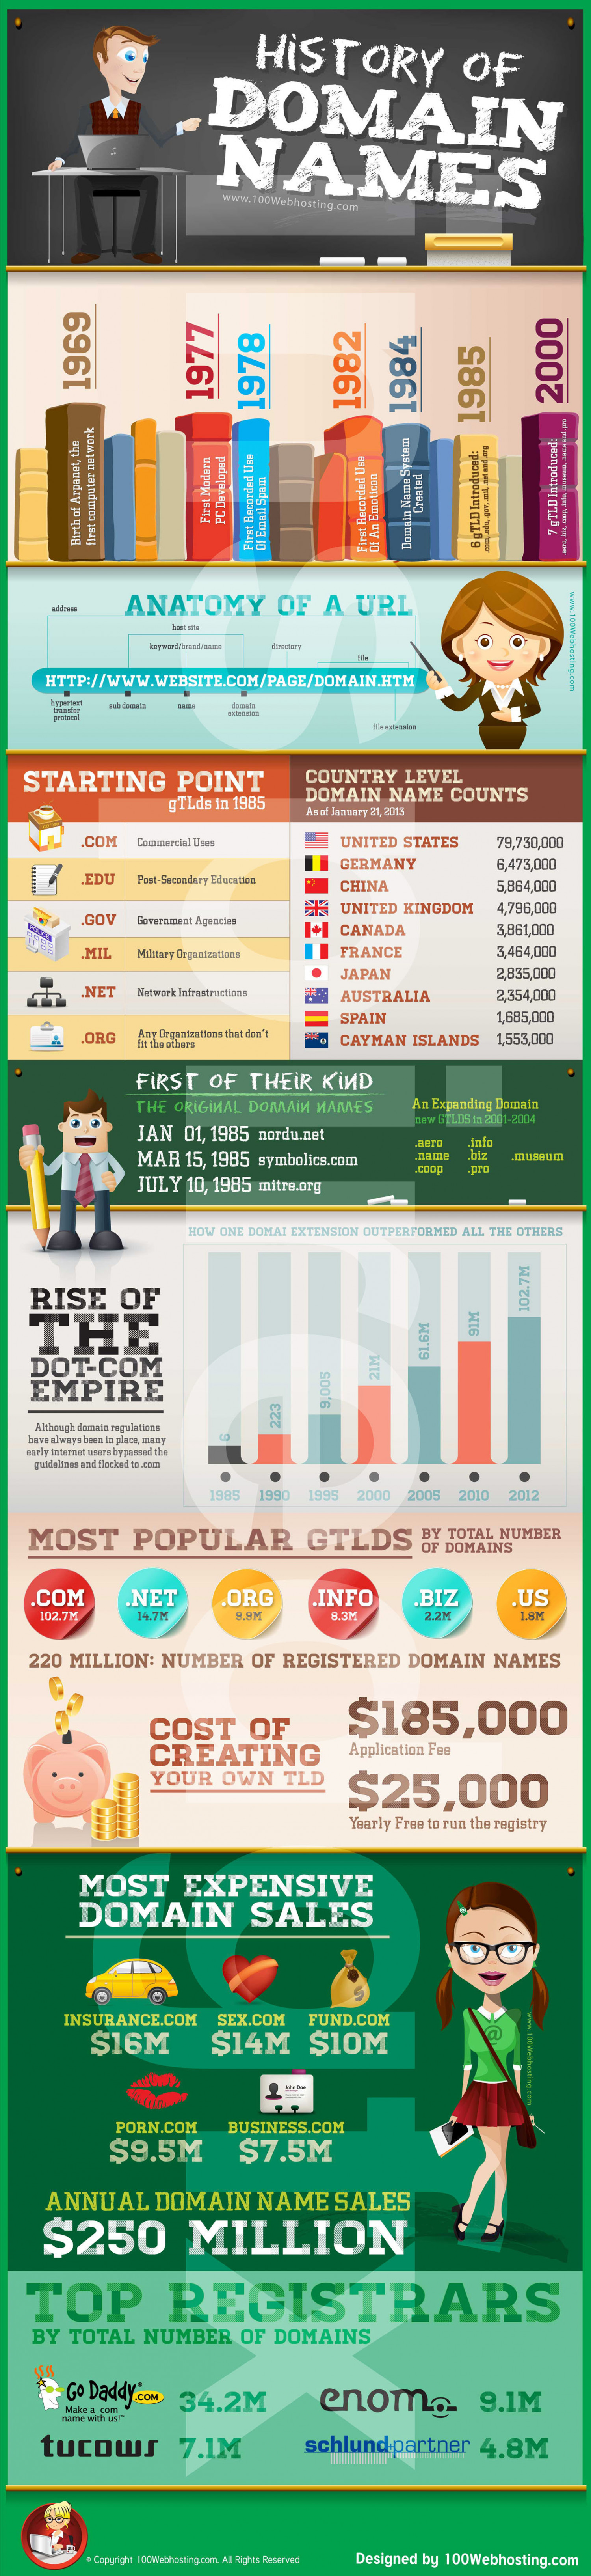 History of Domain Names Infographic